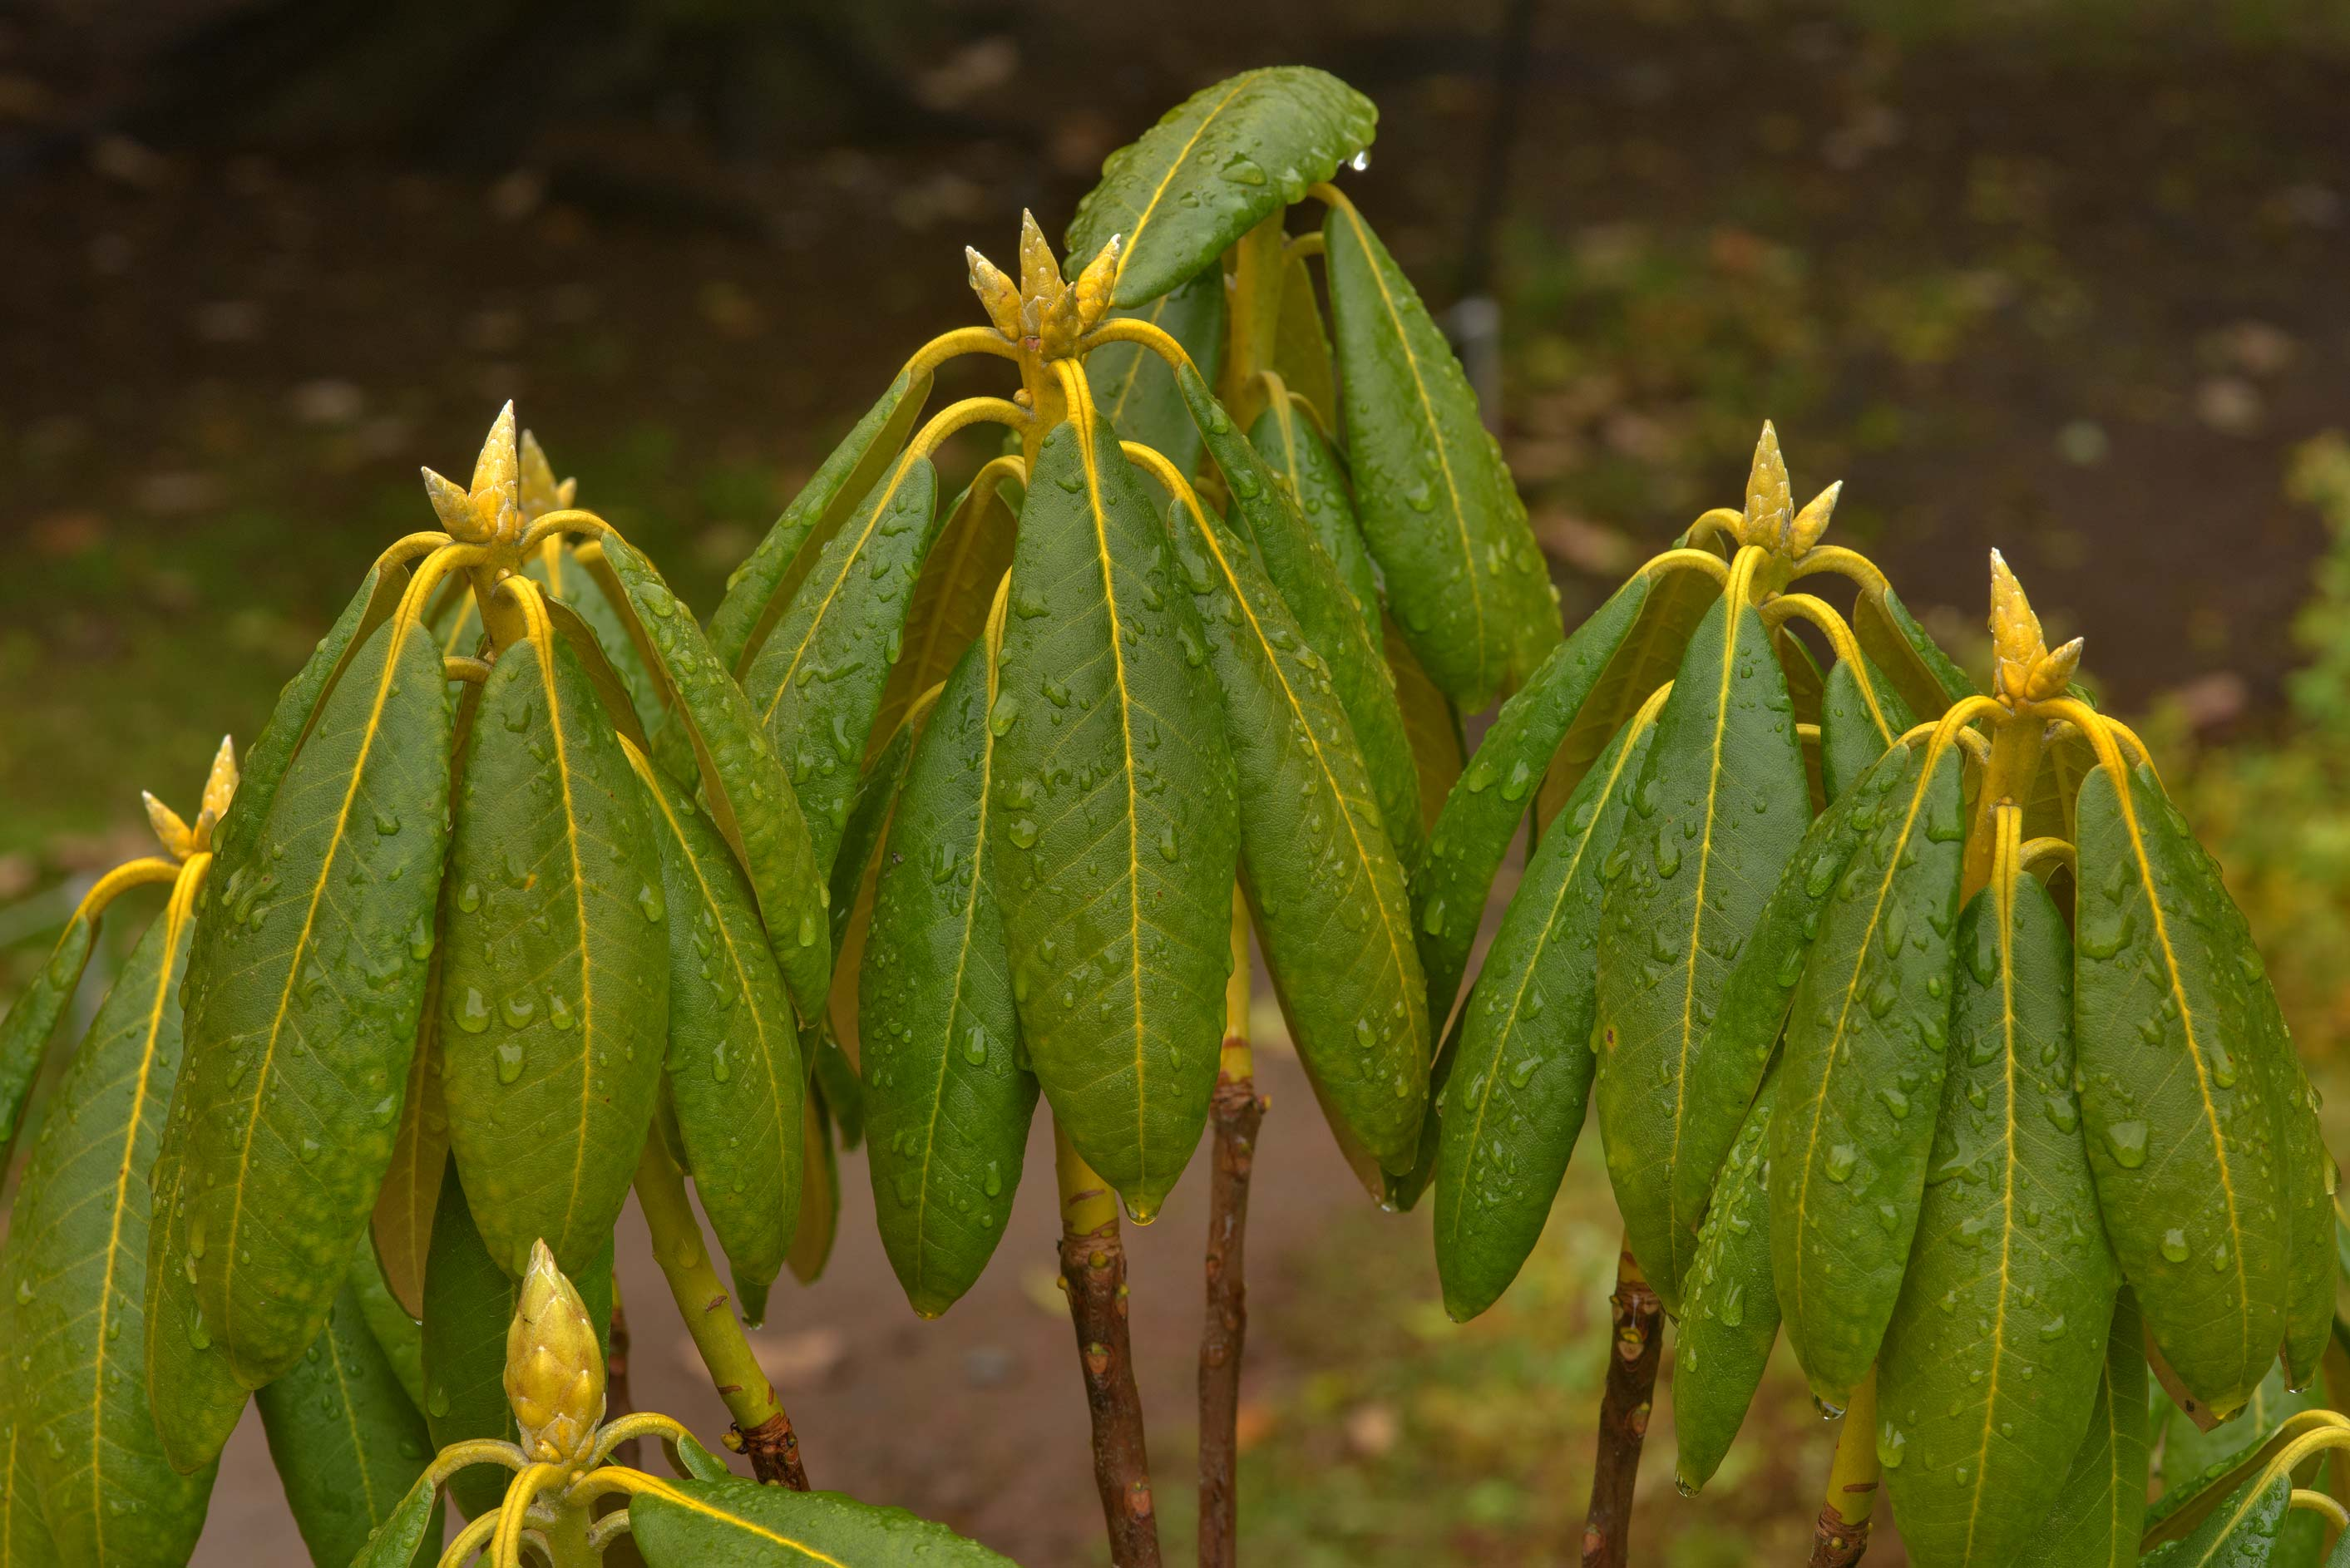 Rhododendron leaves in Botanic Gardens of Komarov...Institute. St.Petersburg, Russia